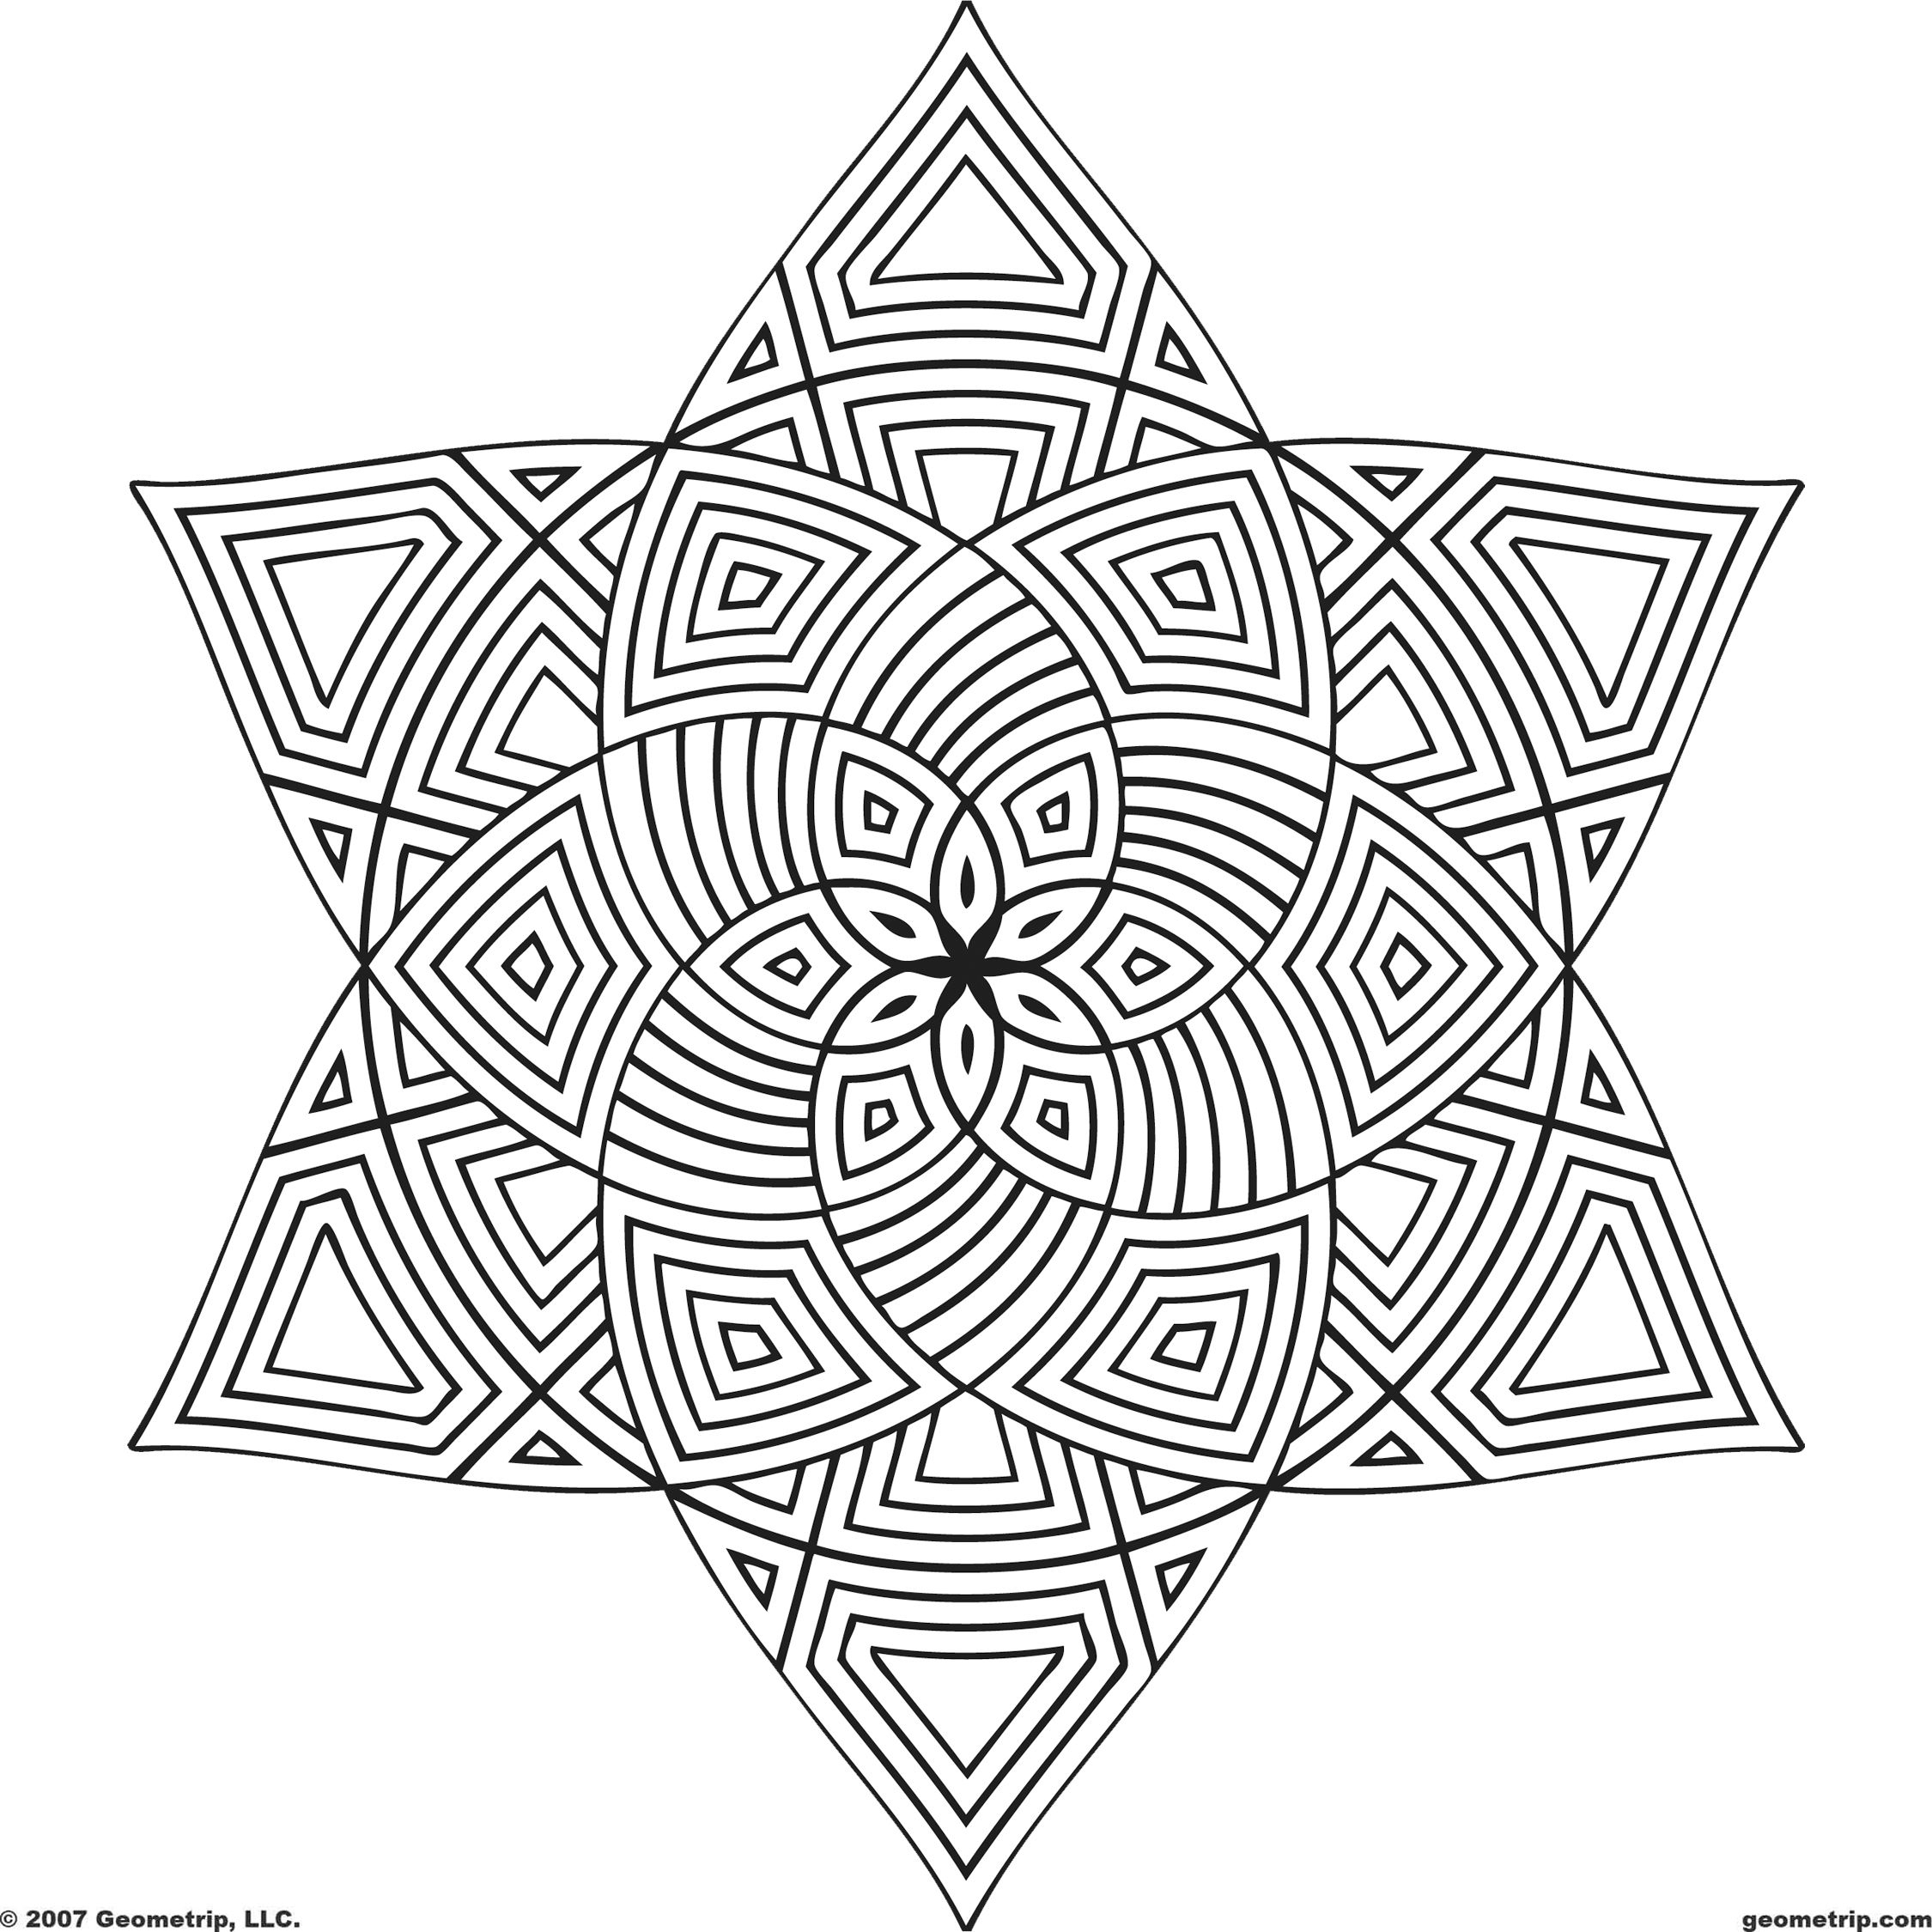 Free Printable Mandala Coloring Pages | Shapes: Page 1 Of 2 - Free Printable Mandala Coloring Pages